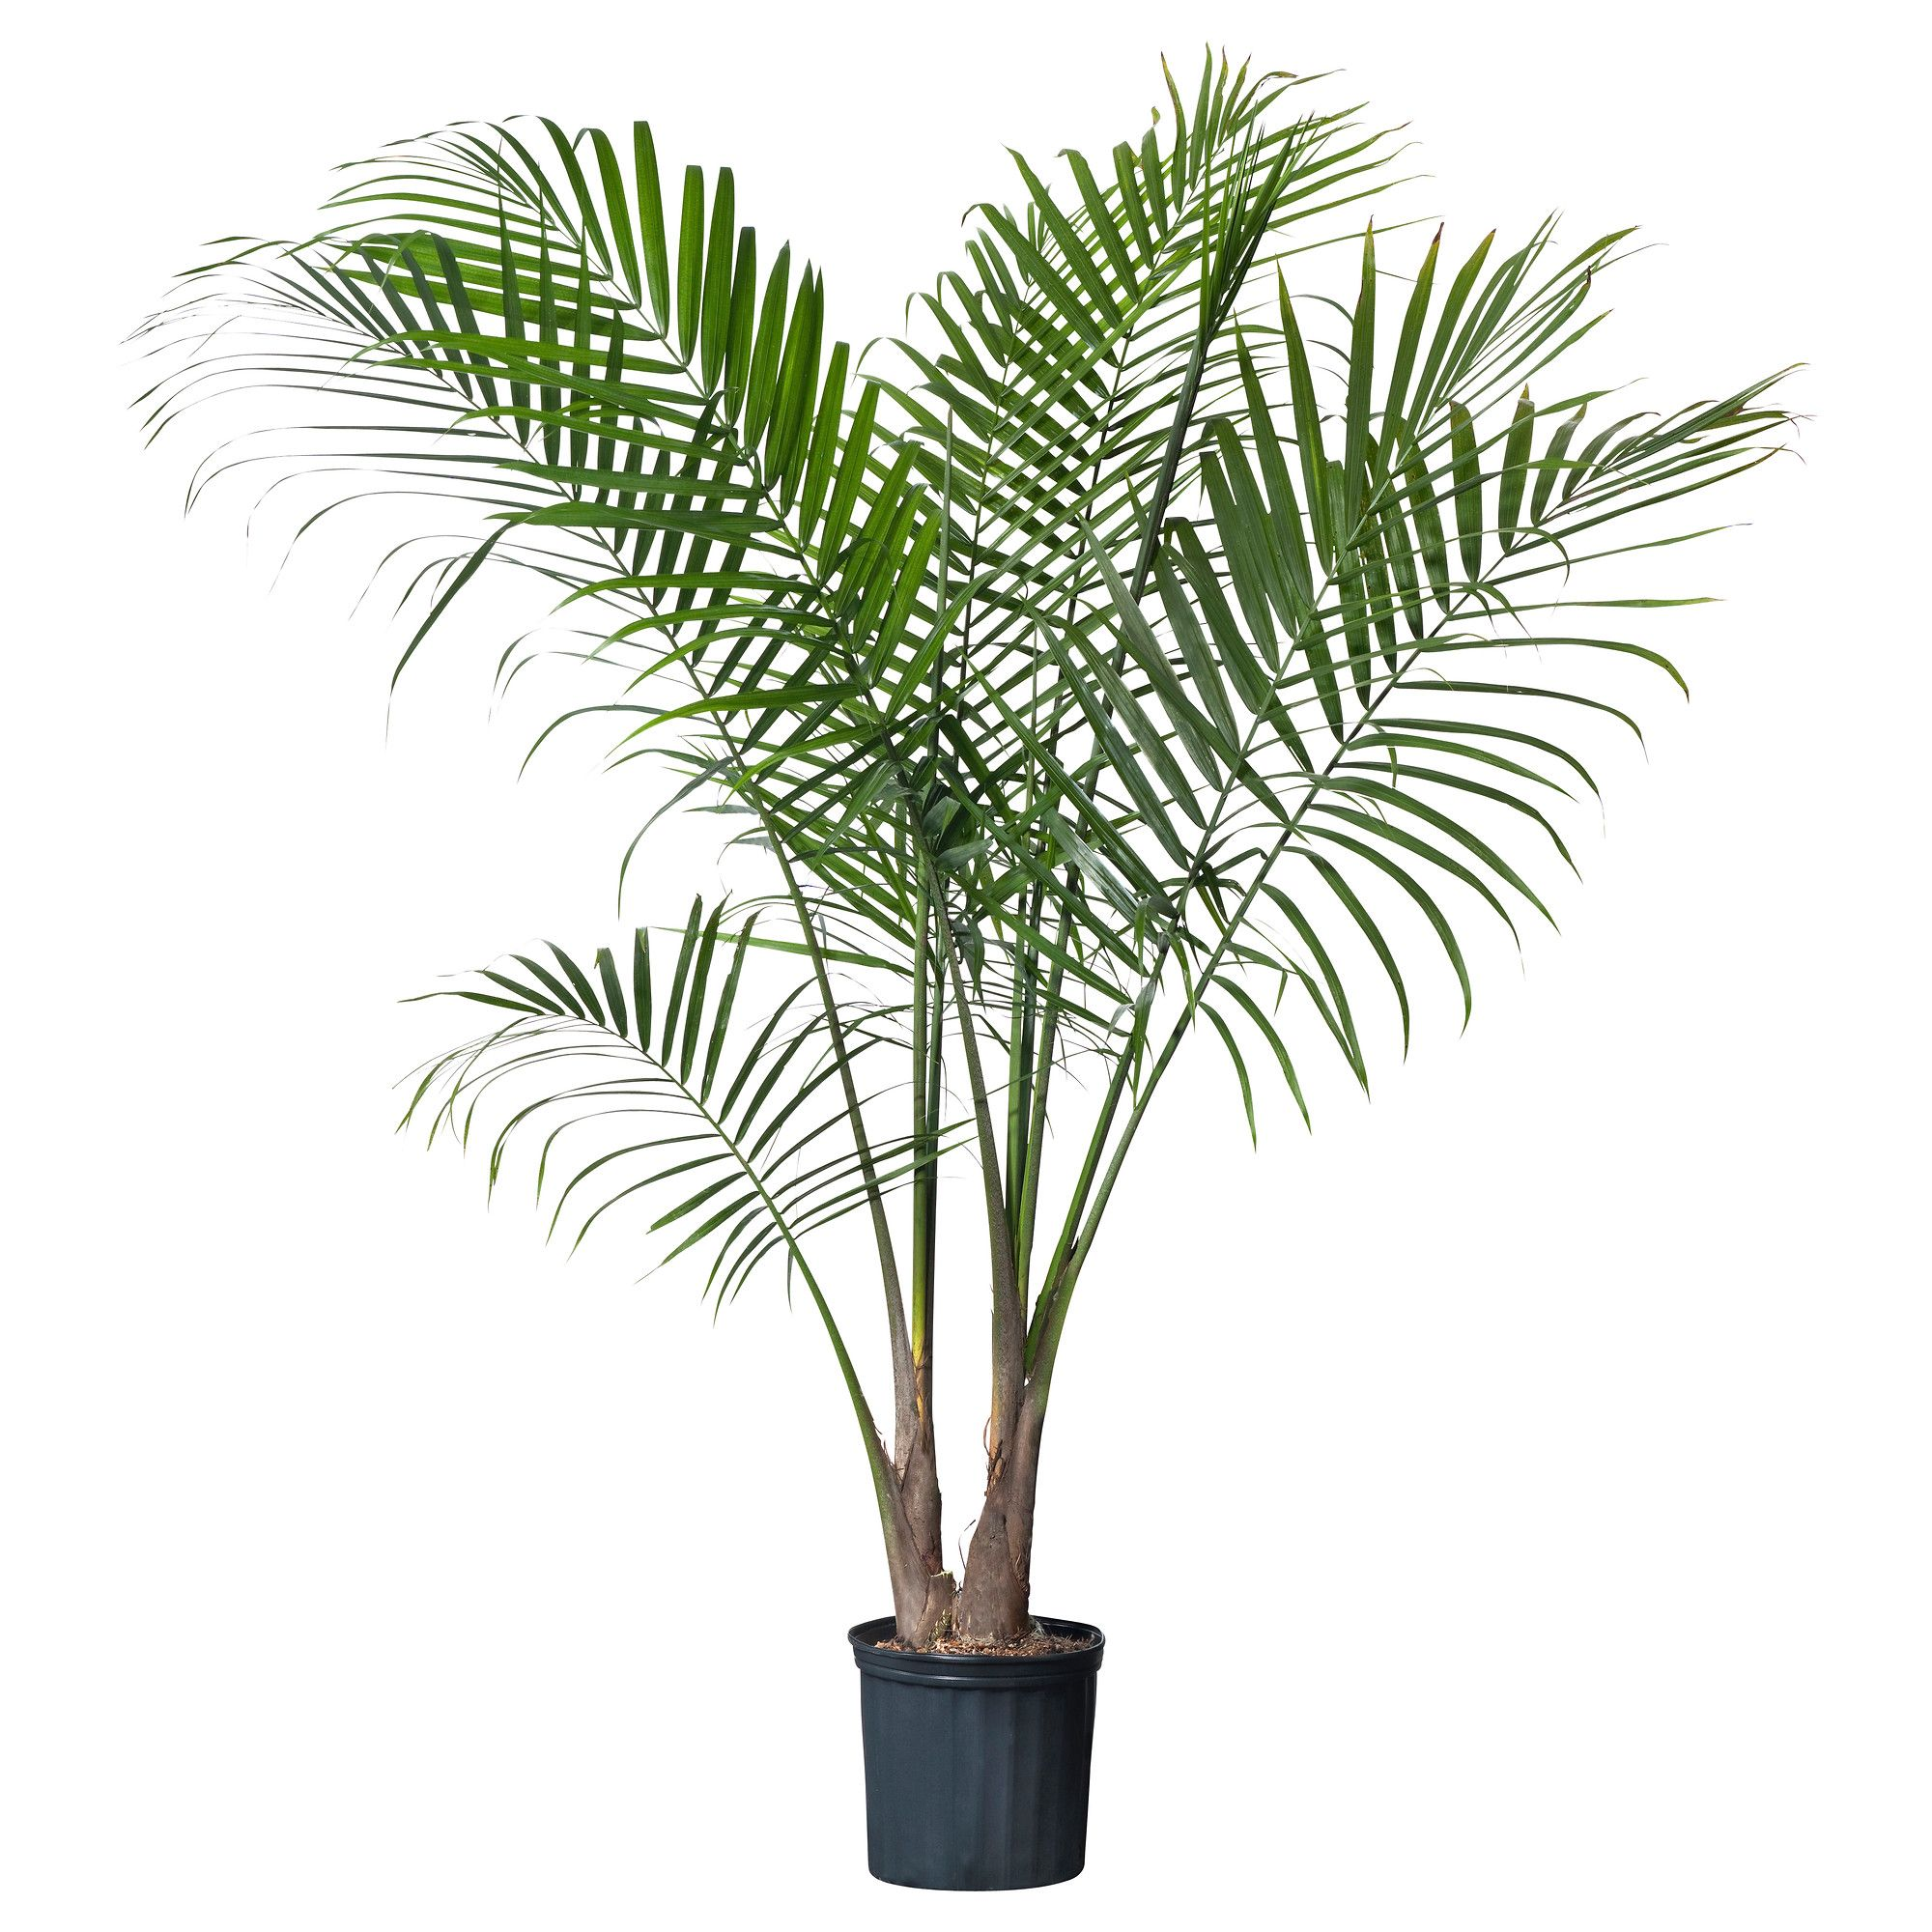 Ikea Planters Large Ravenea Potted Plant Majesty Palm Palm Plants Plants